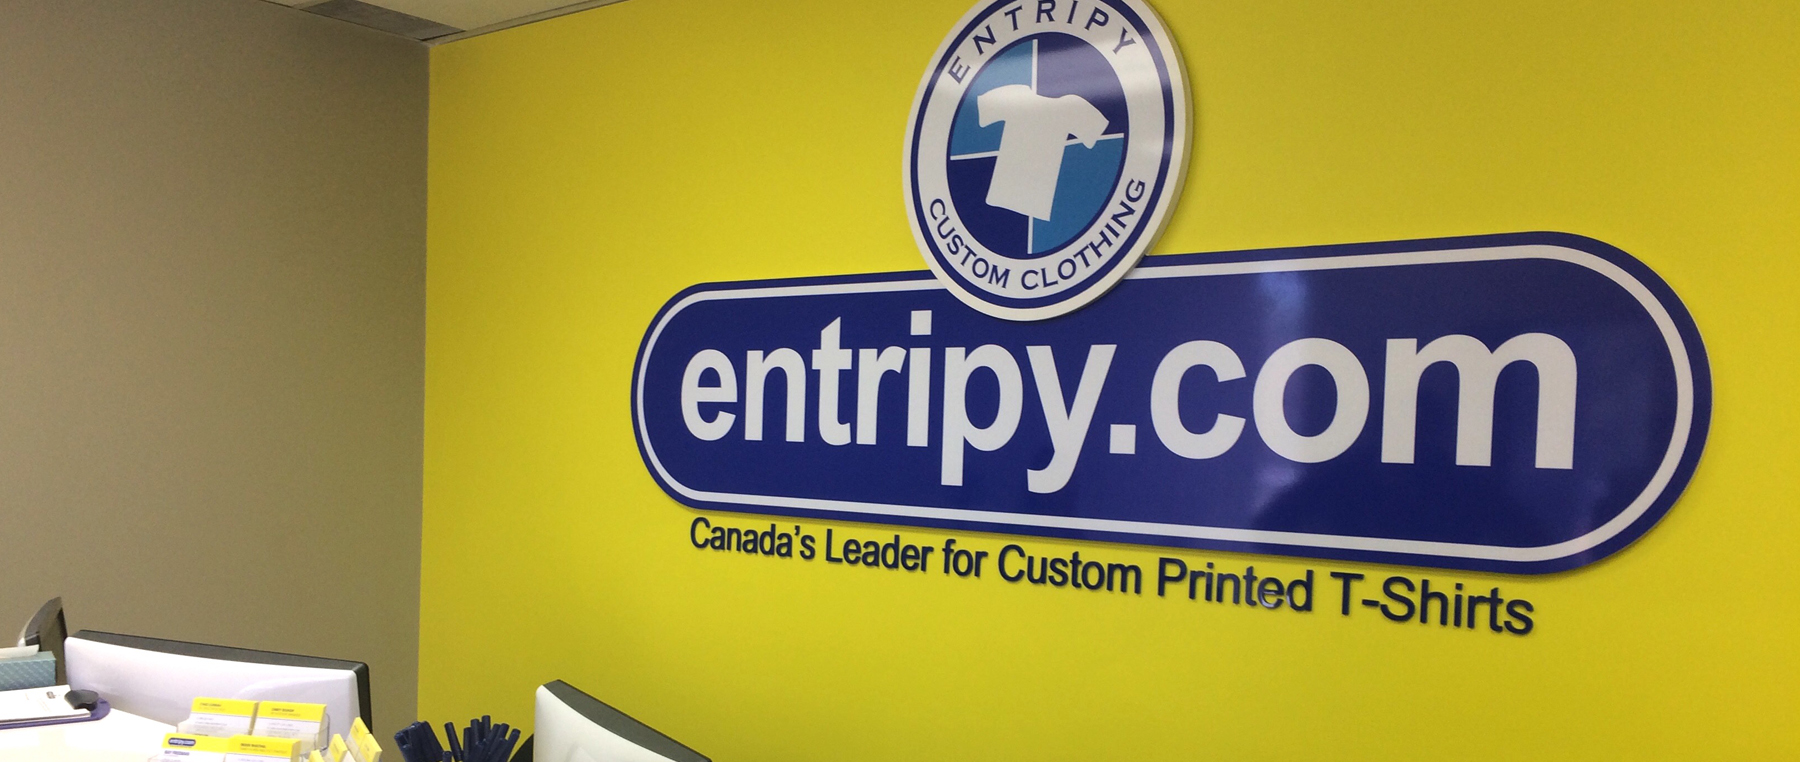 Entripy is an in-house facility with screen printing machines for custom t-shirts.